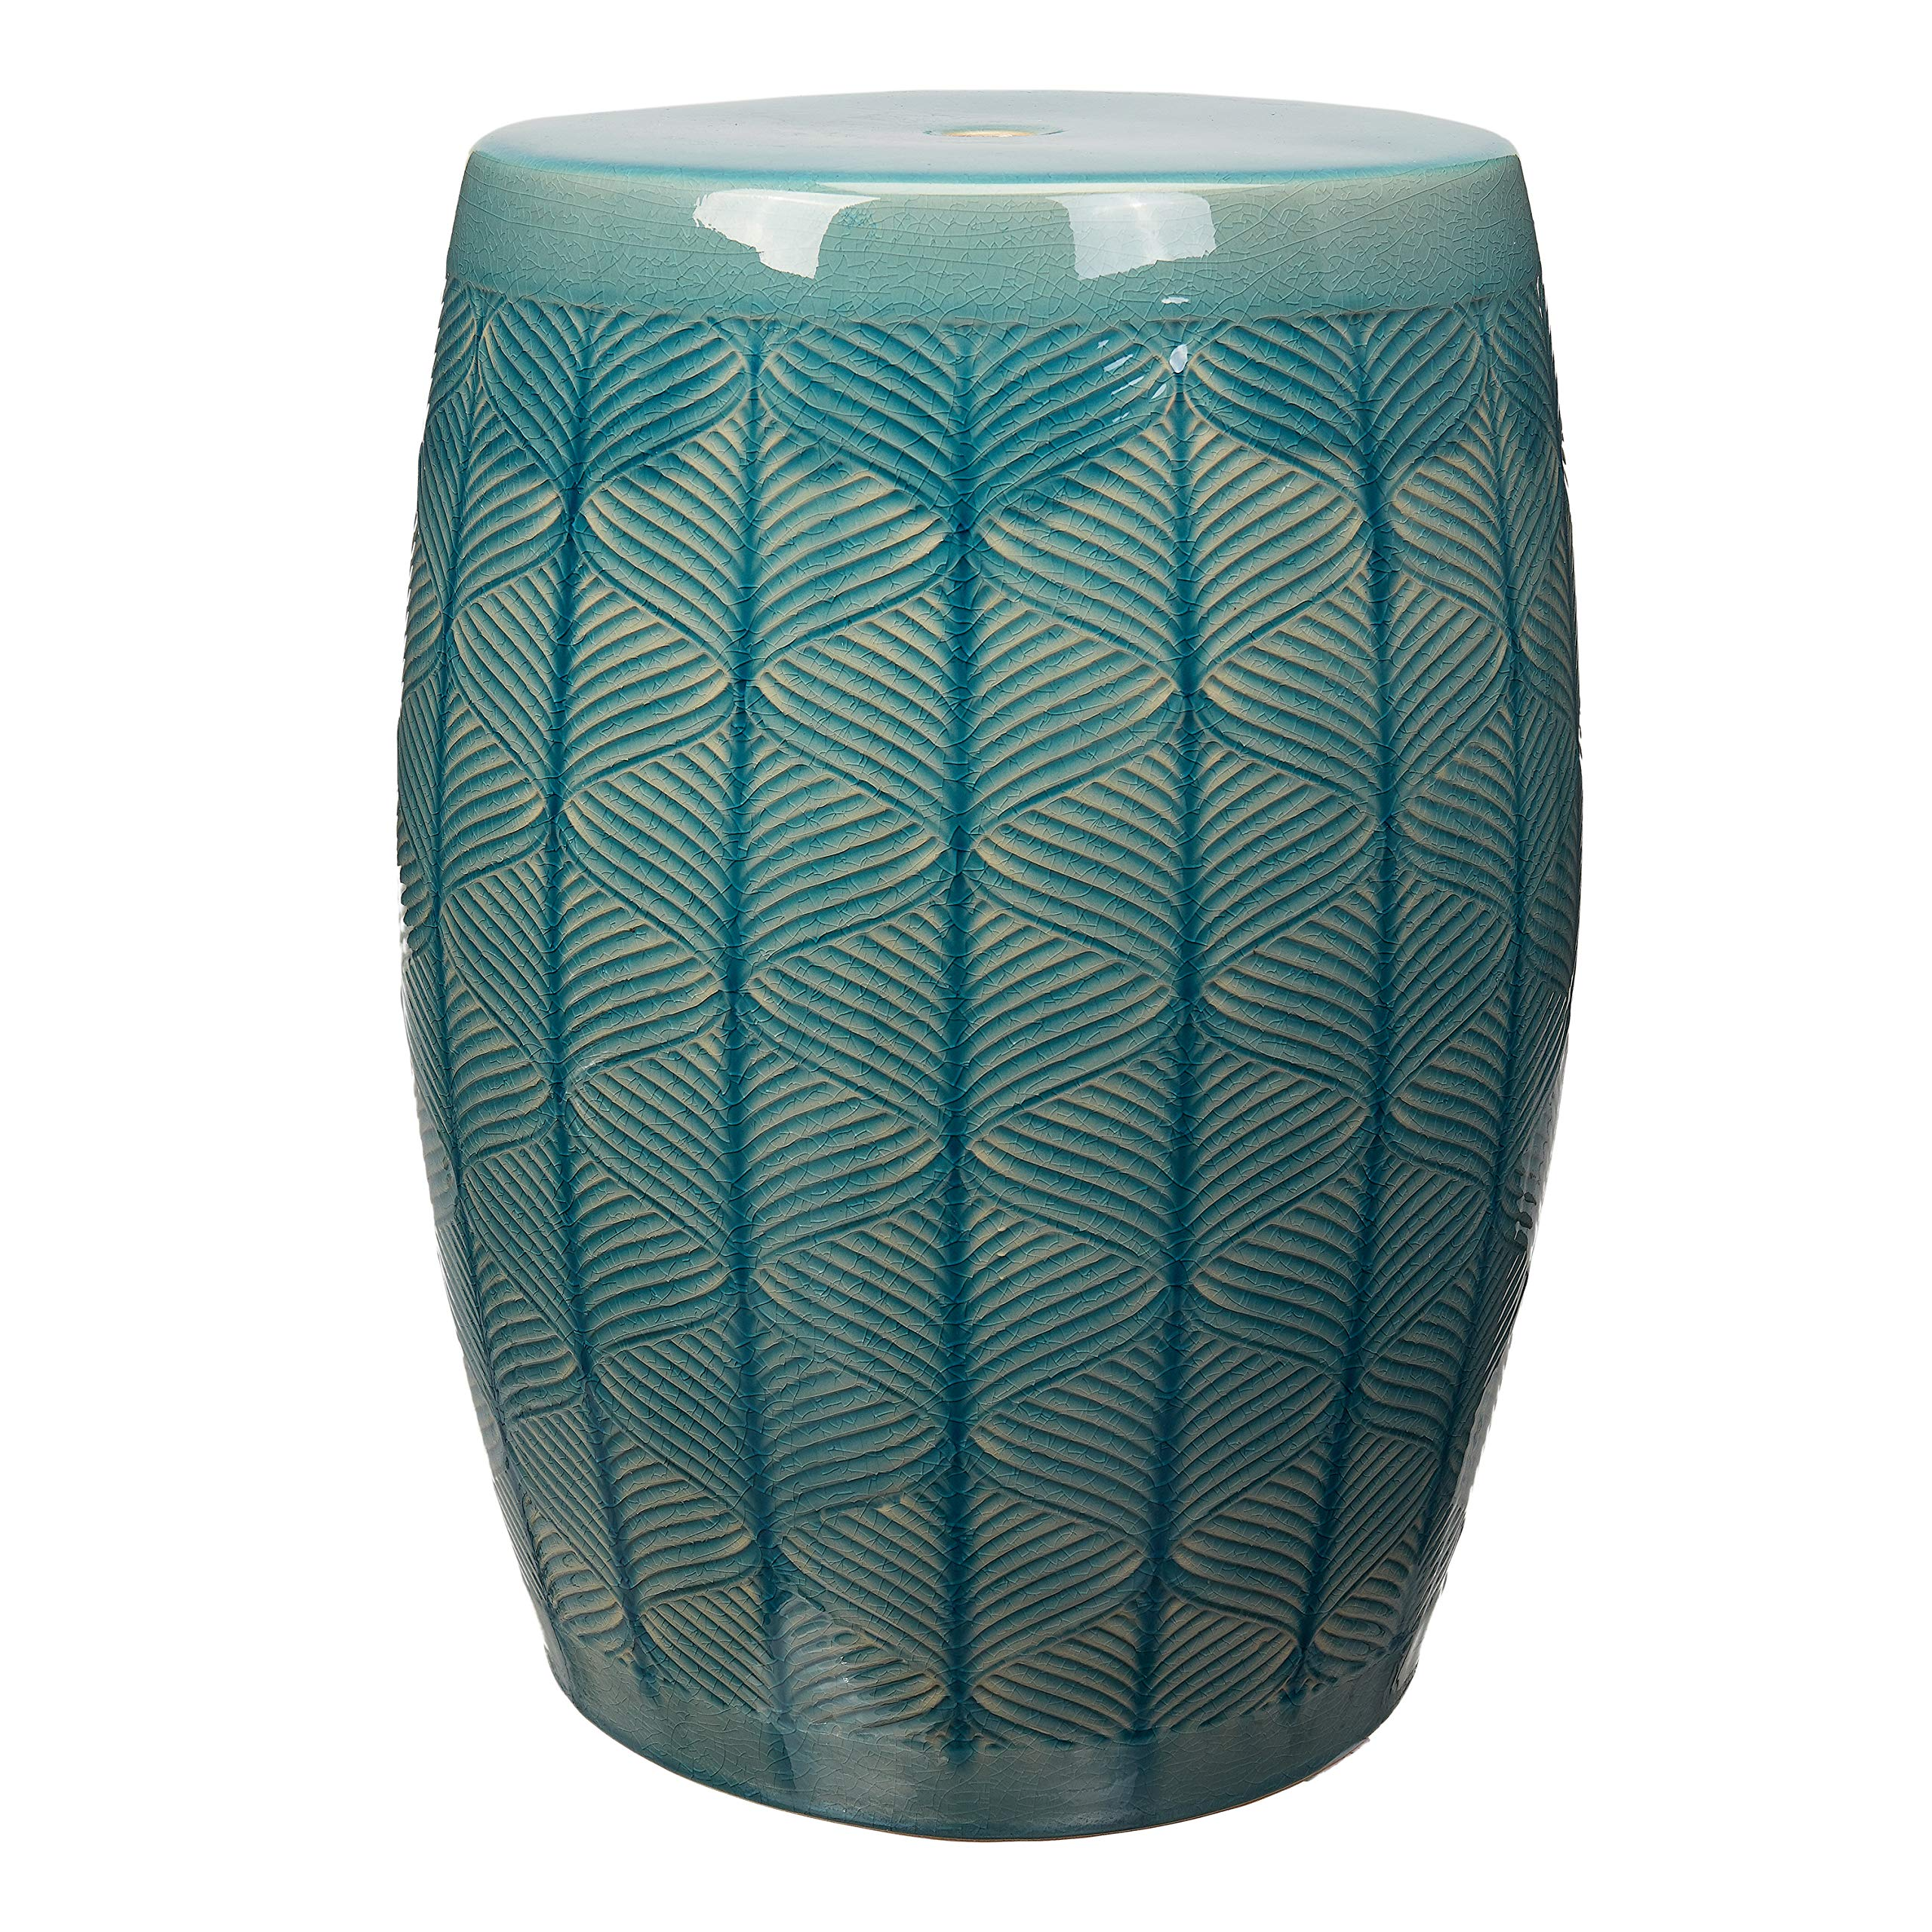 Better Homes and Gardens 17'' Marina Multi-Use Teal Green Textured Ceramic Garden Stool Side Table